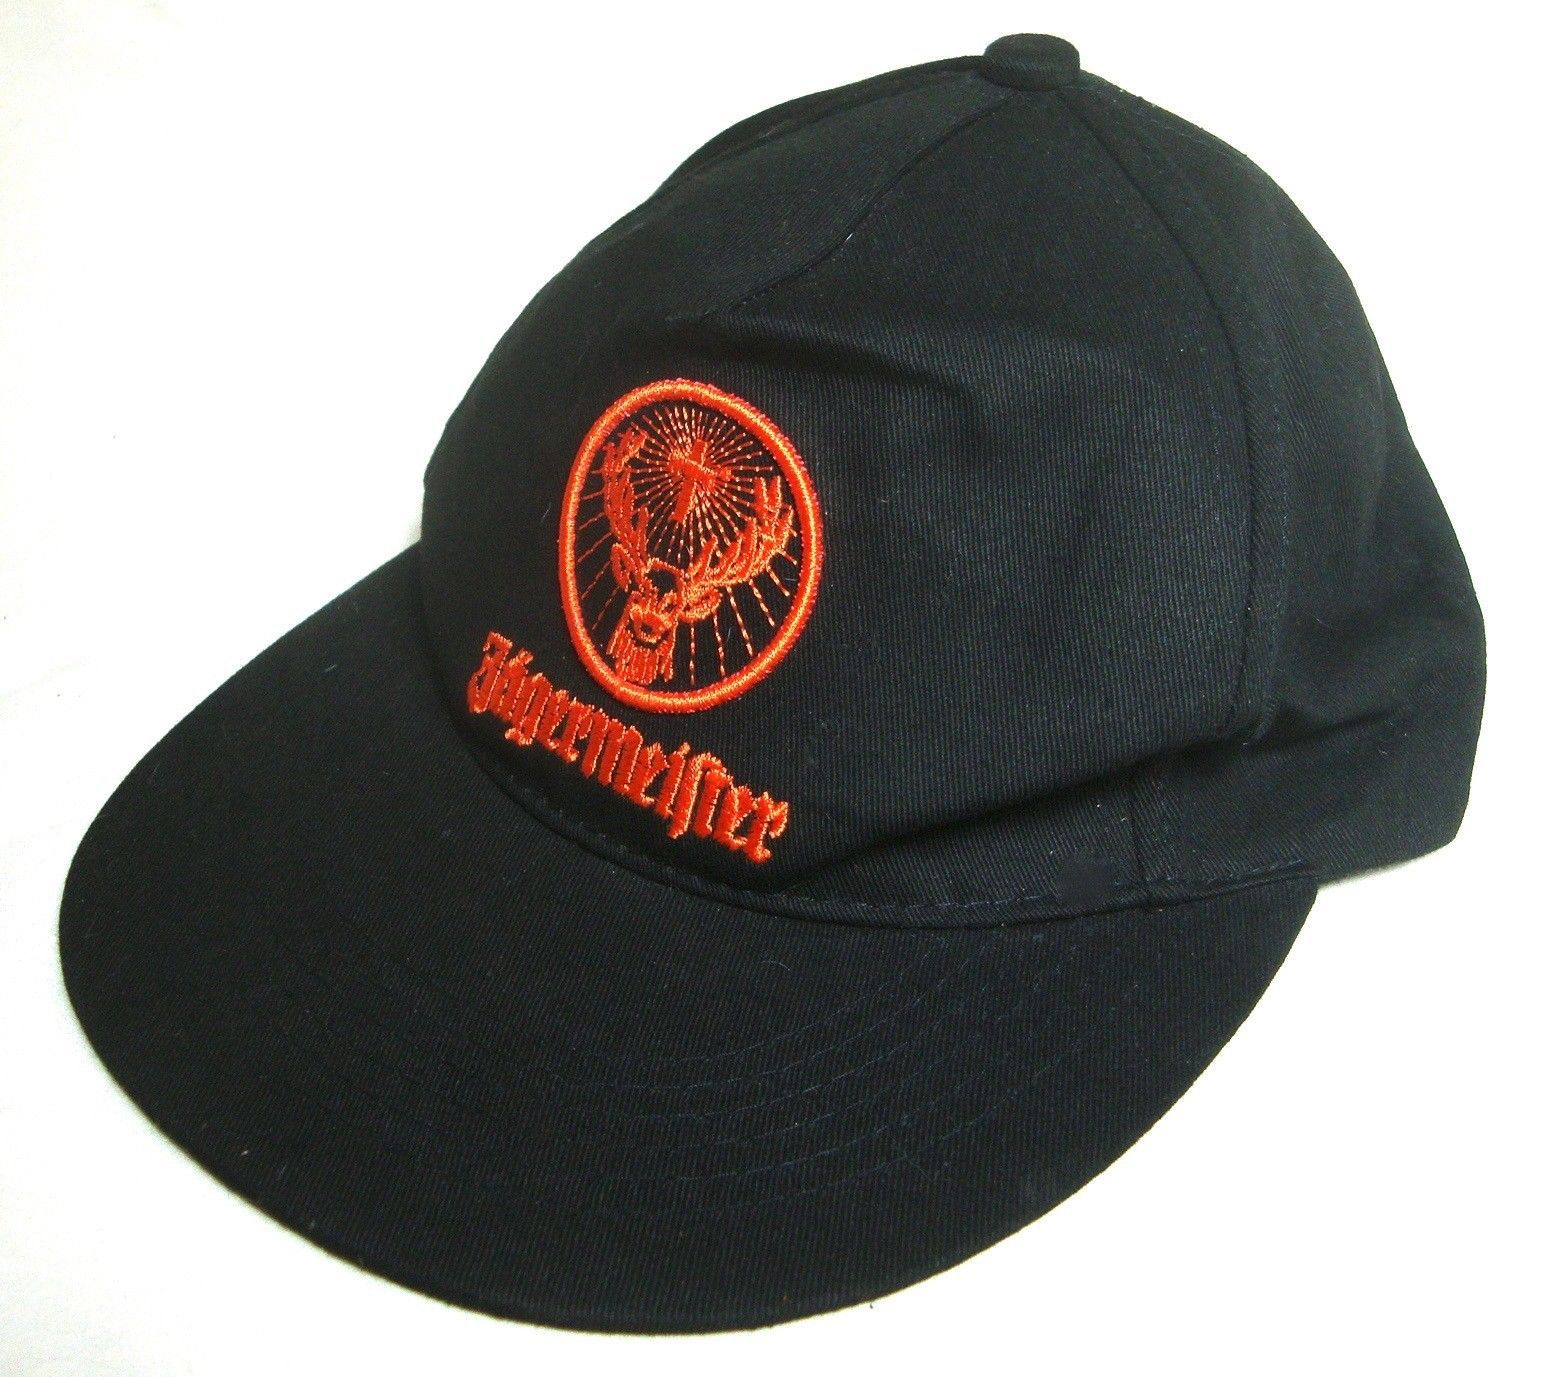 27e54ed79e1 Jägermeister Truckers Cap Black Orange and 50 similar items. S l1600